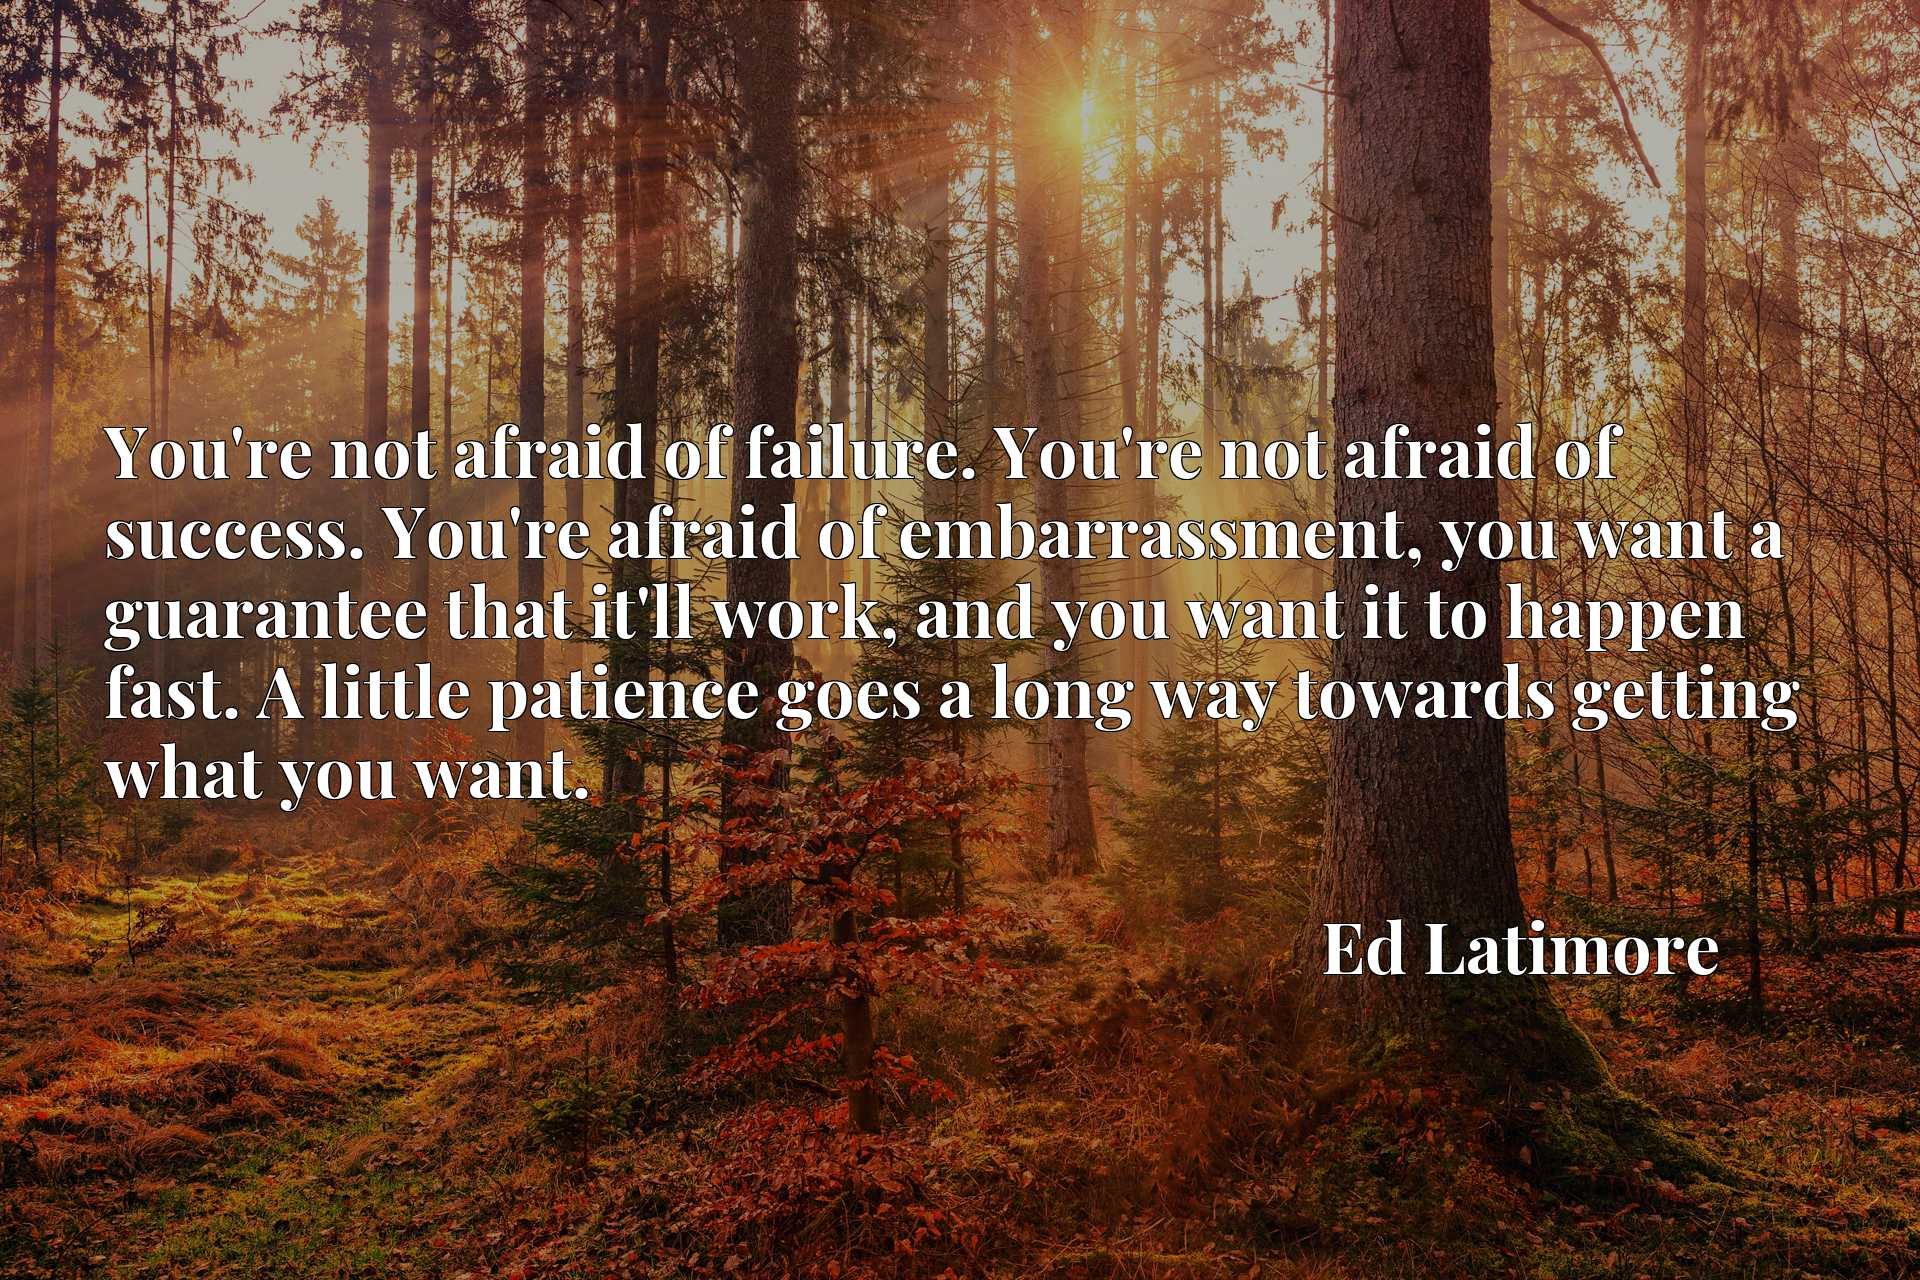 You're not afraid of failure. You're not afraid of success. You're afraid of embarrassment, you want a guarantee that it'll work, and you want it to happen fast. A little patience goes a long way towards getting what you want.